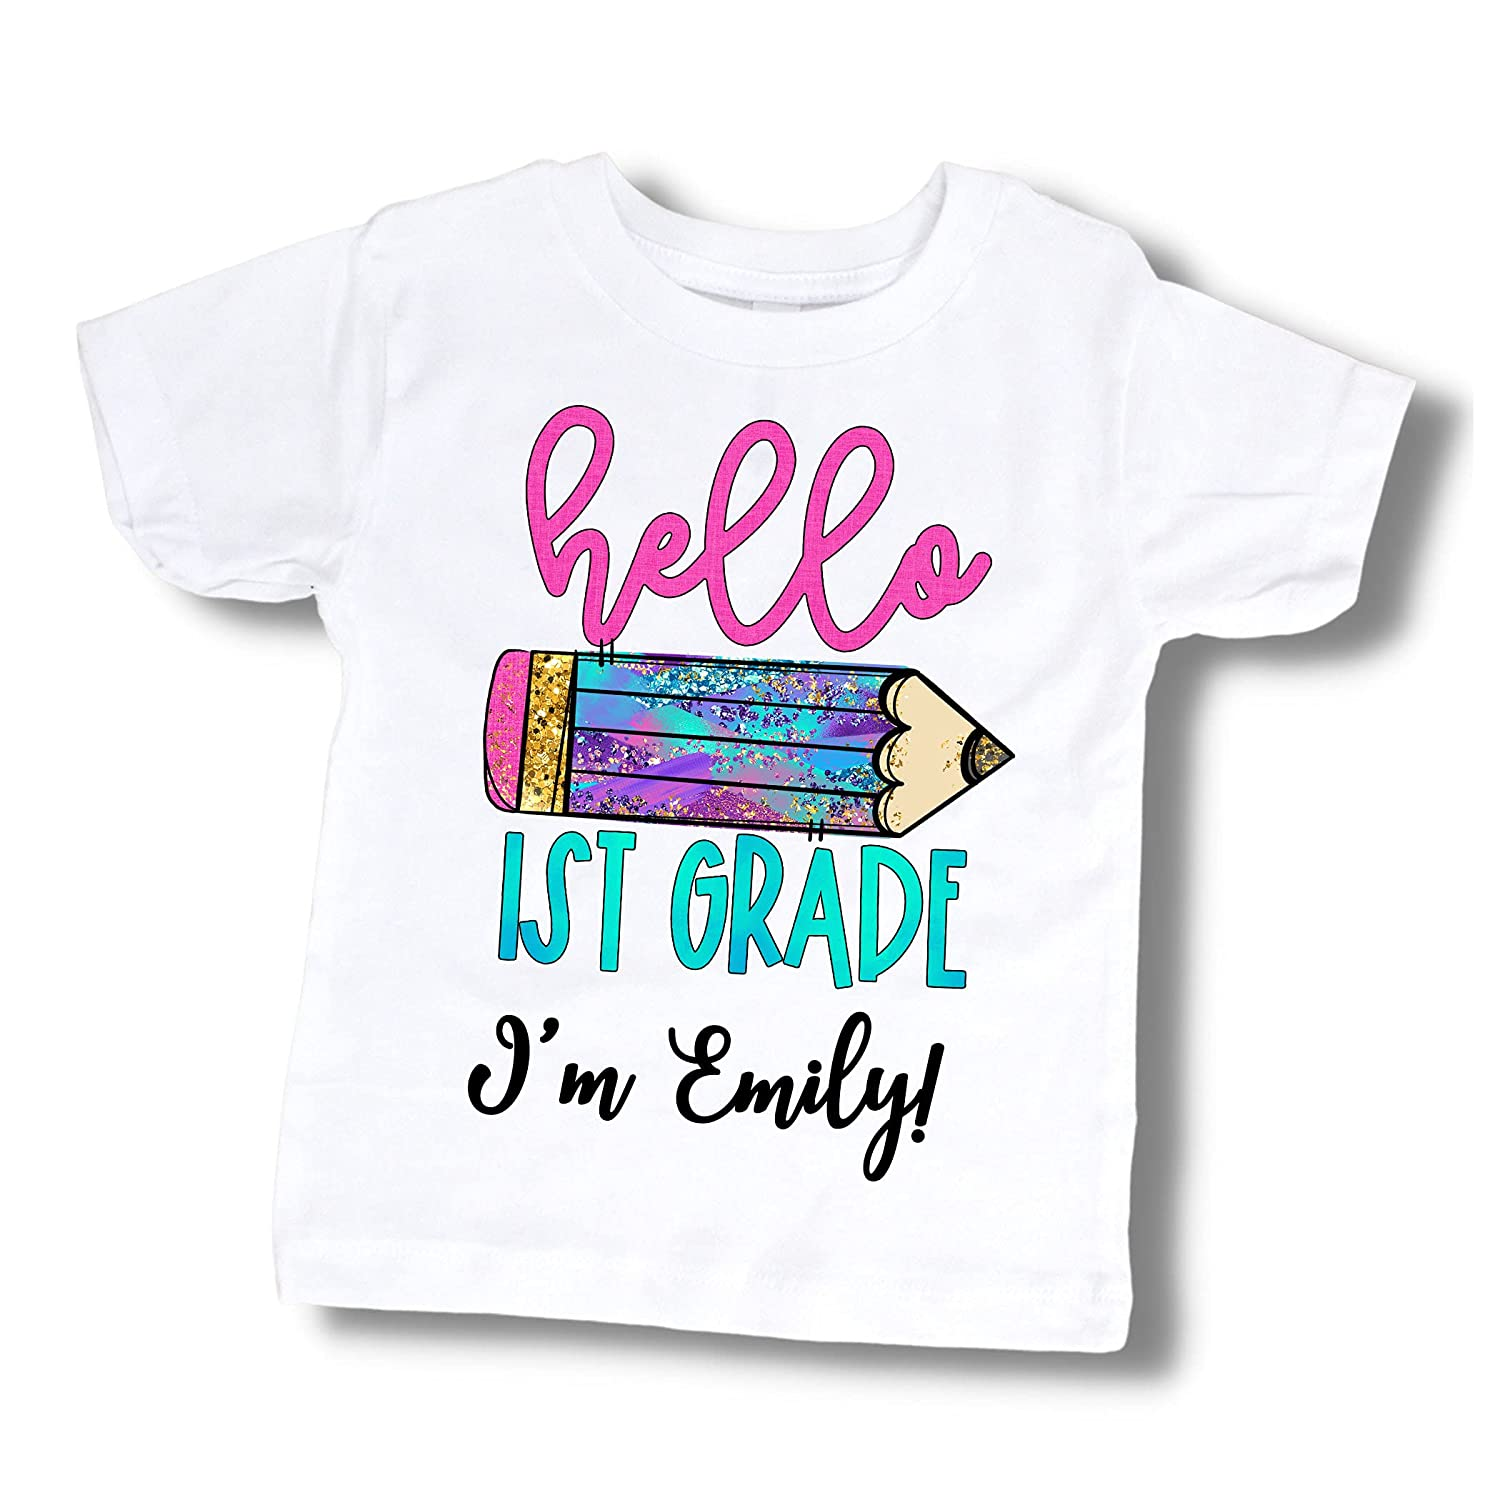 Store First Day of School Tshirt Custom Name 35% OFF for 1st Gir Grade Outfit